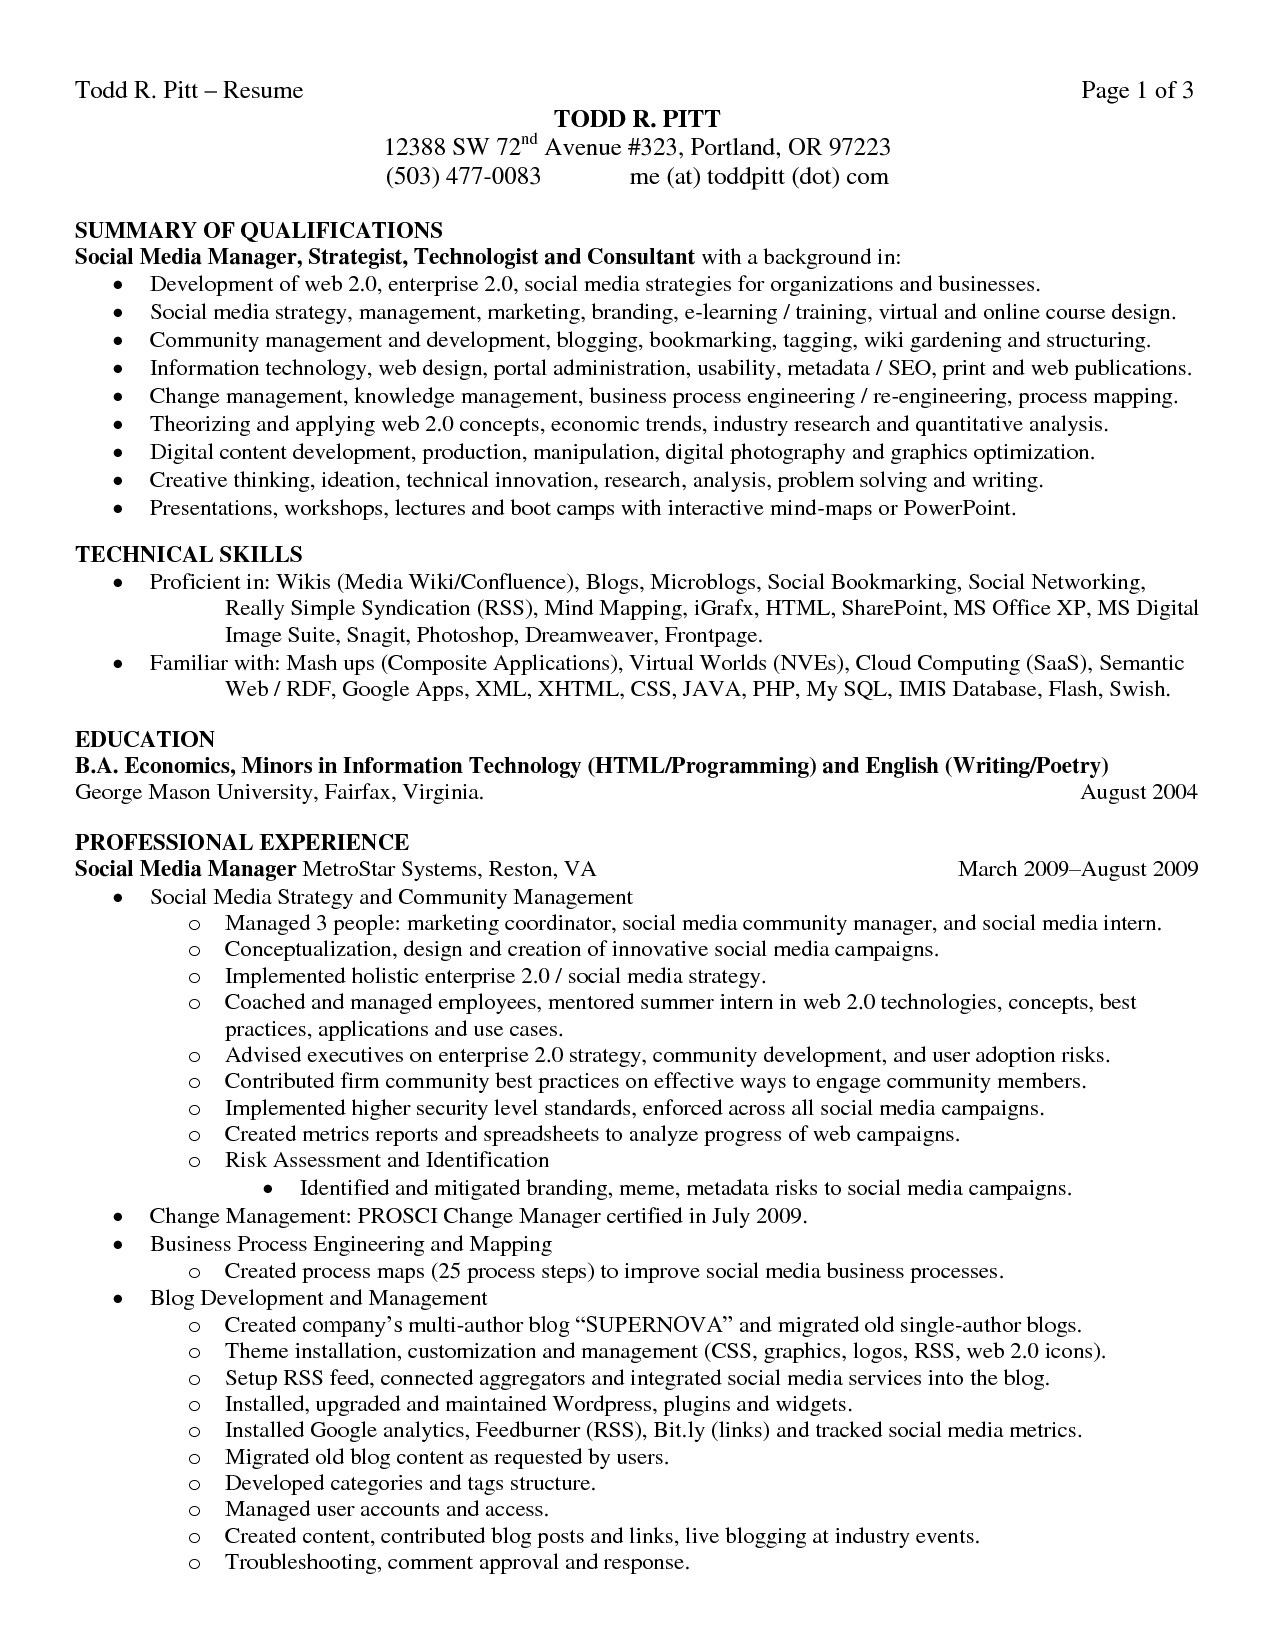 com page of business resume sample resume summary of qualifications technical skills professional experience